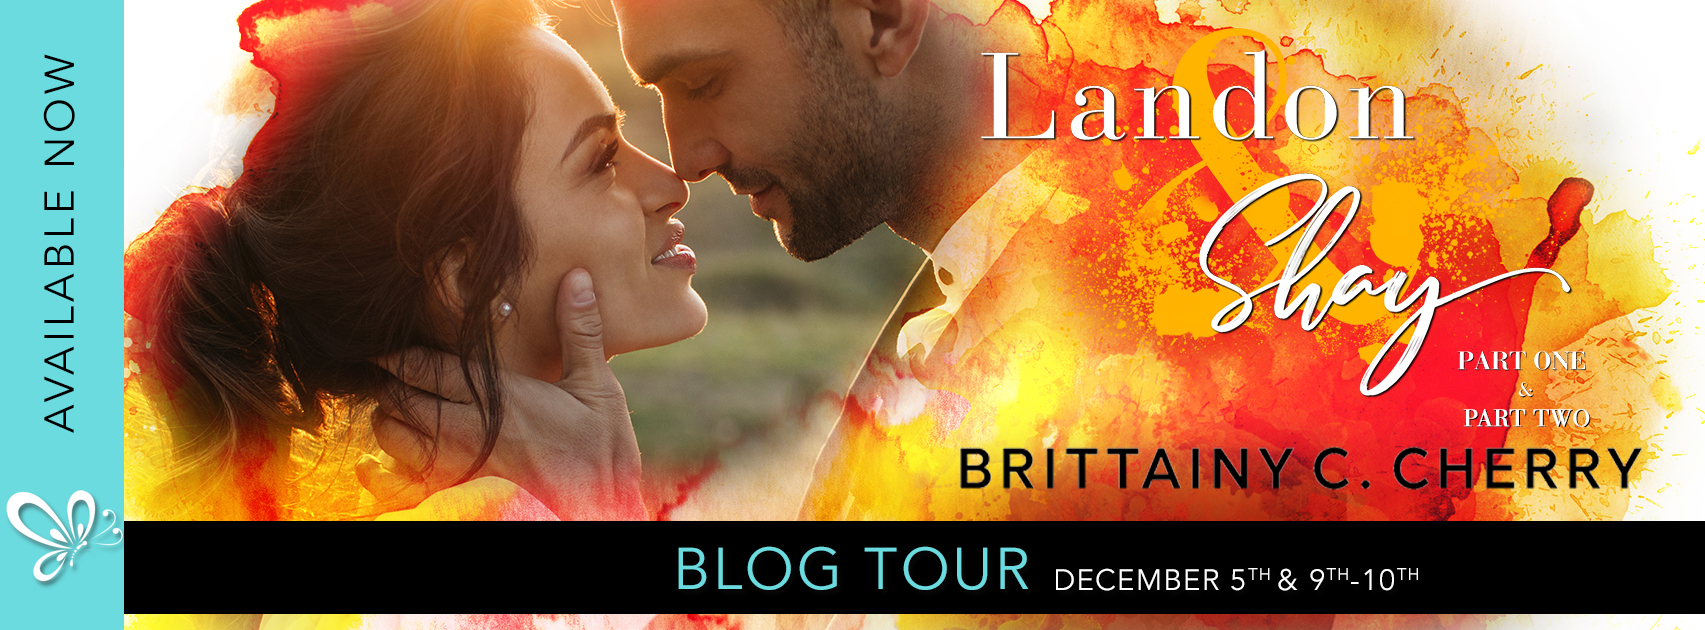 Blog Tour & Review: Landon and Shay Part Two by Brittainy C. Cherry